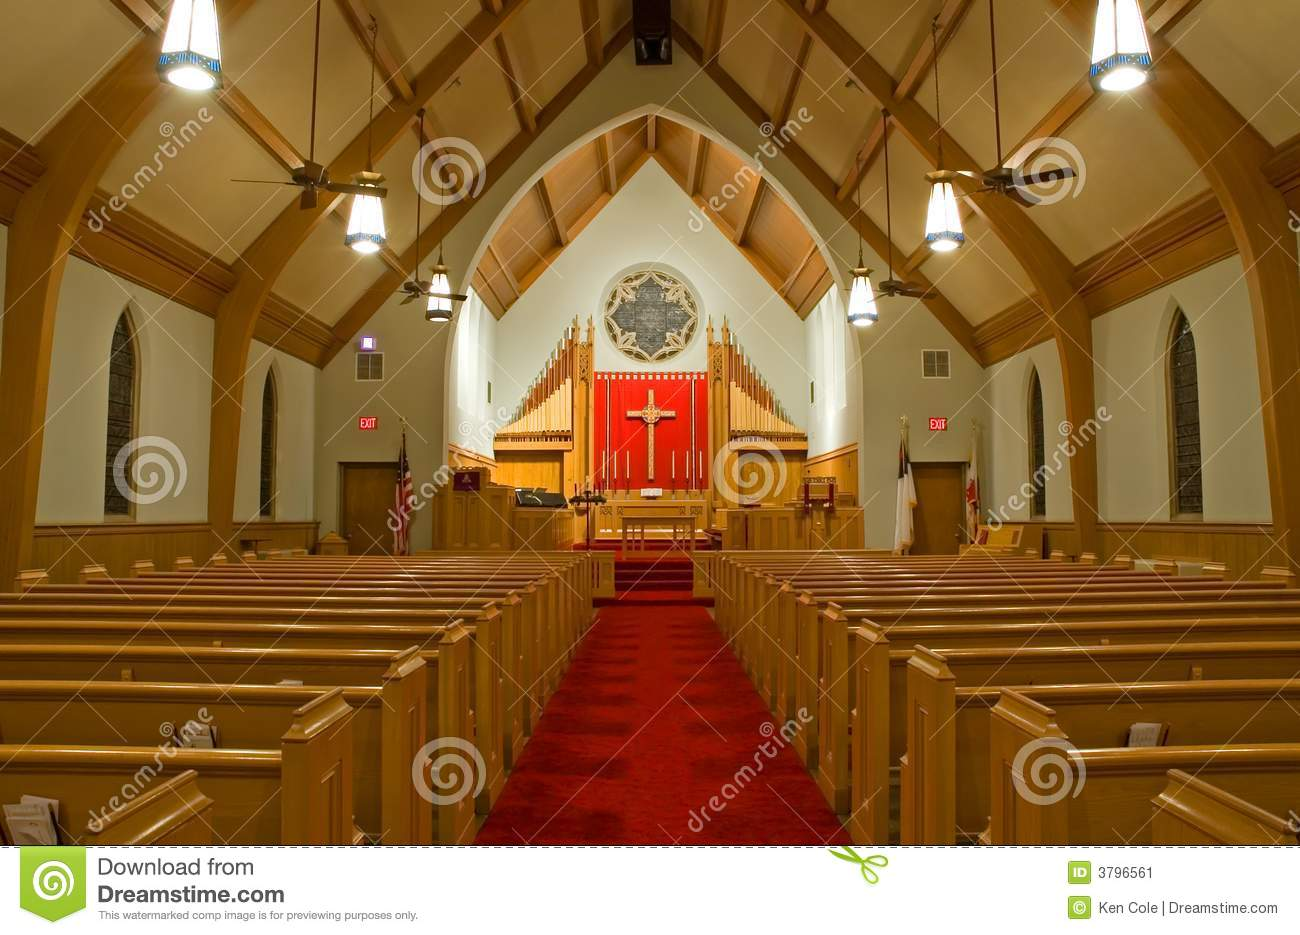 Protestant Church Sanctuary Stock Image - Image: 3796561